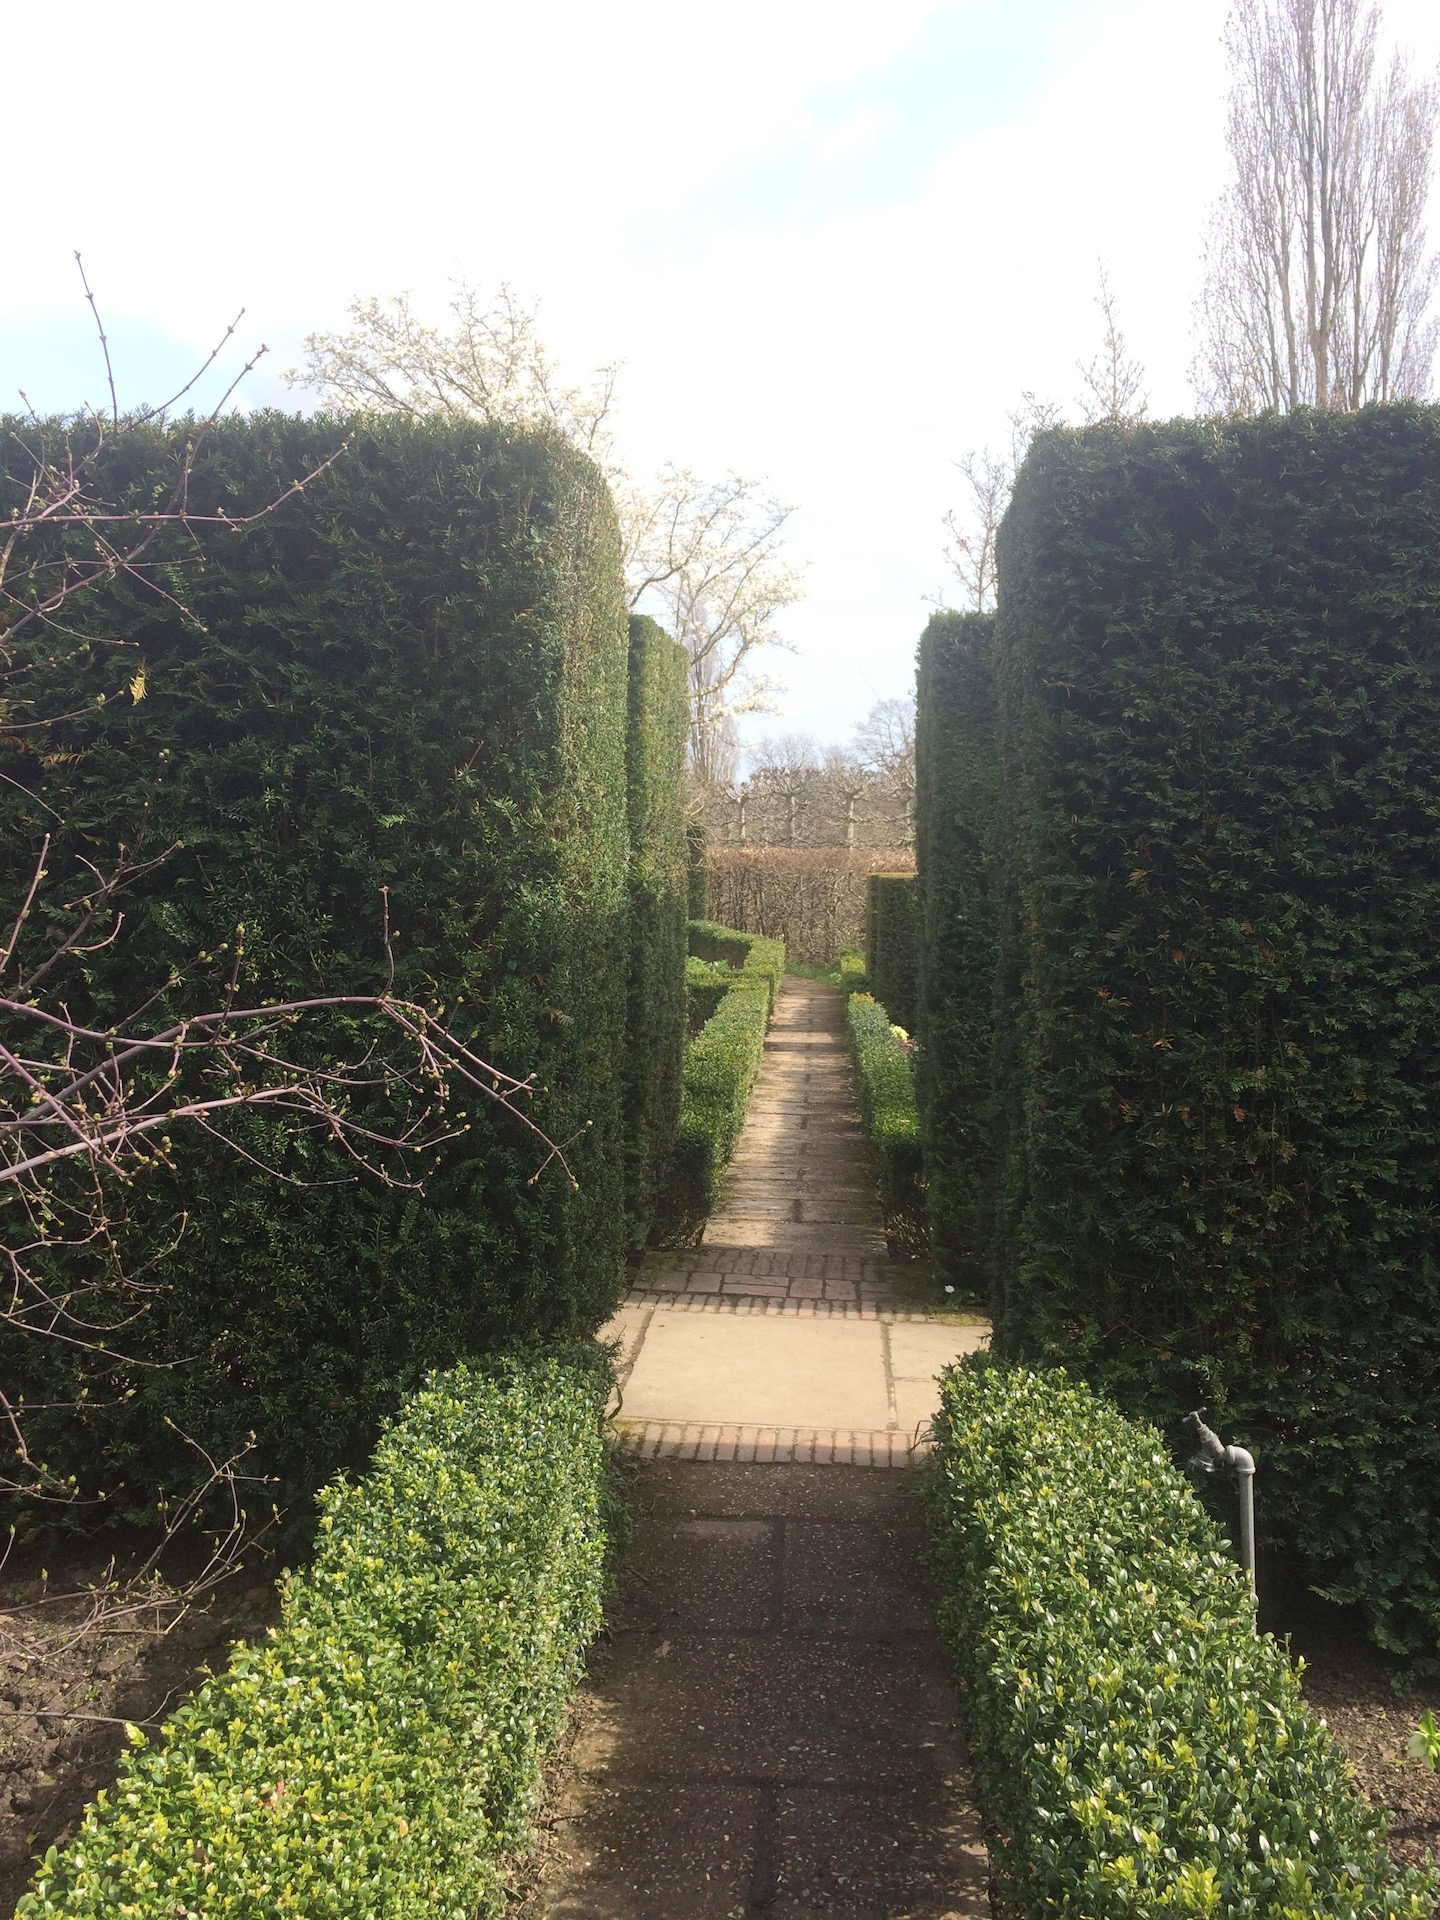 Yews and box hedges. Classic English Garden Design.